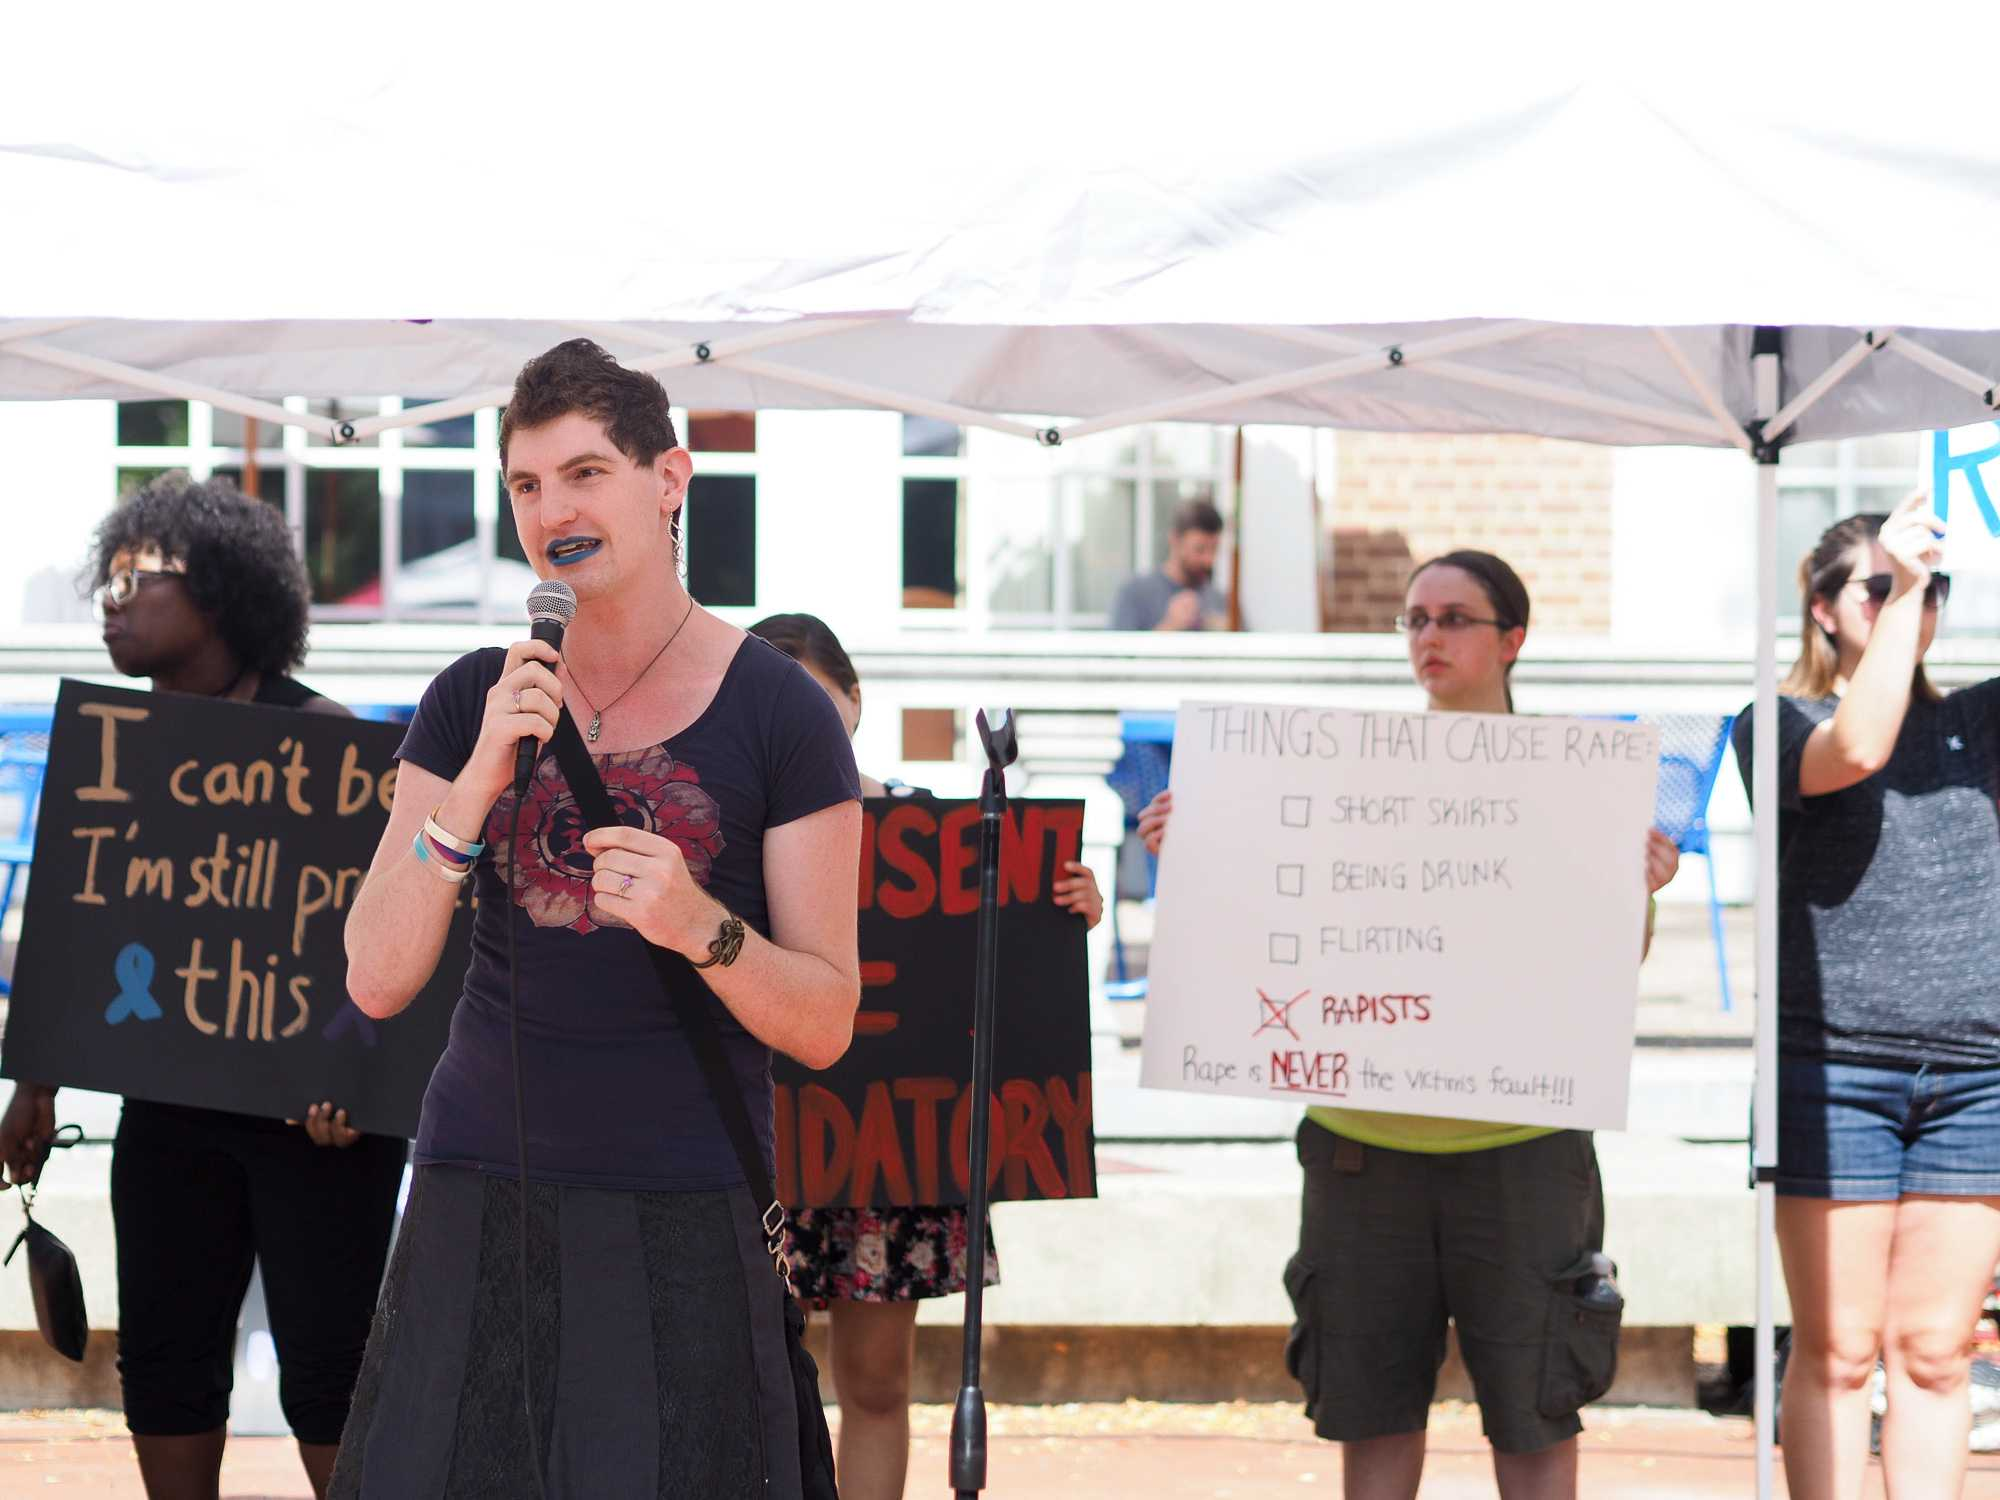 Stephanie Skora speaks out against Rape Culture at the Rally behind the Illini Union. September 23, 2016.